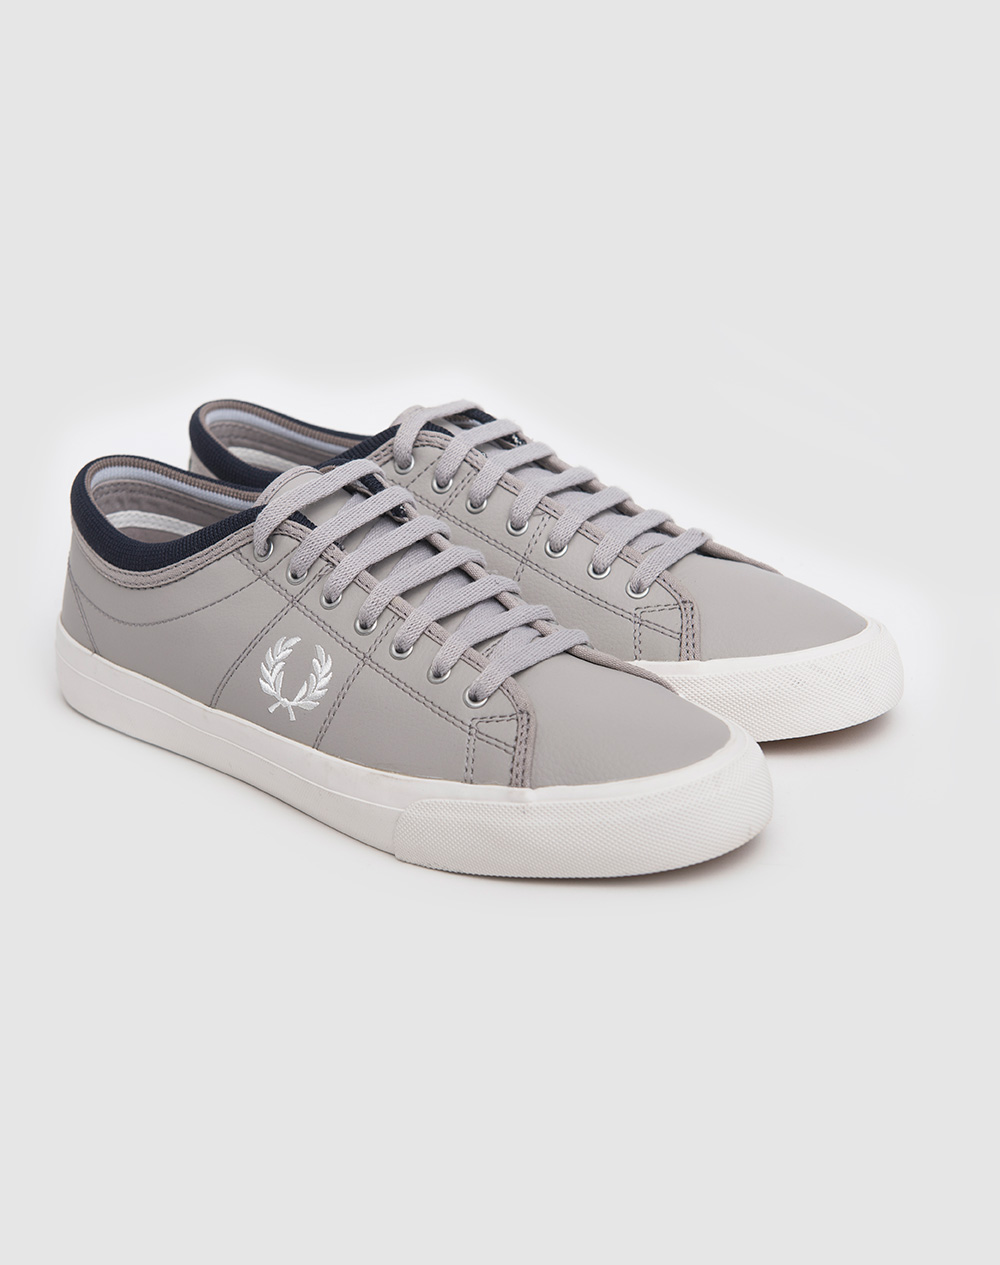 Zapatillas Fred Perry modelo Kendrick Reverses Tipped Cuff Canvas en color gris para hombre